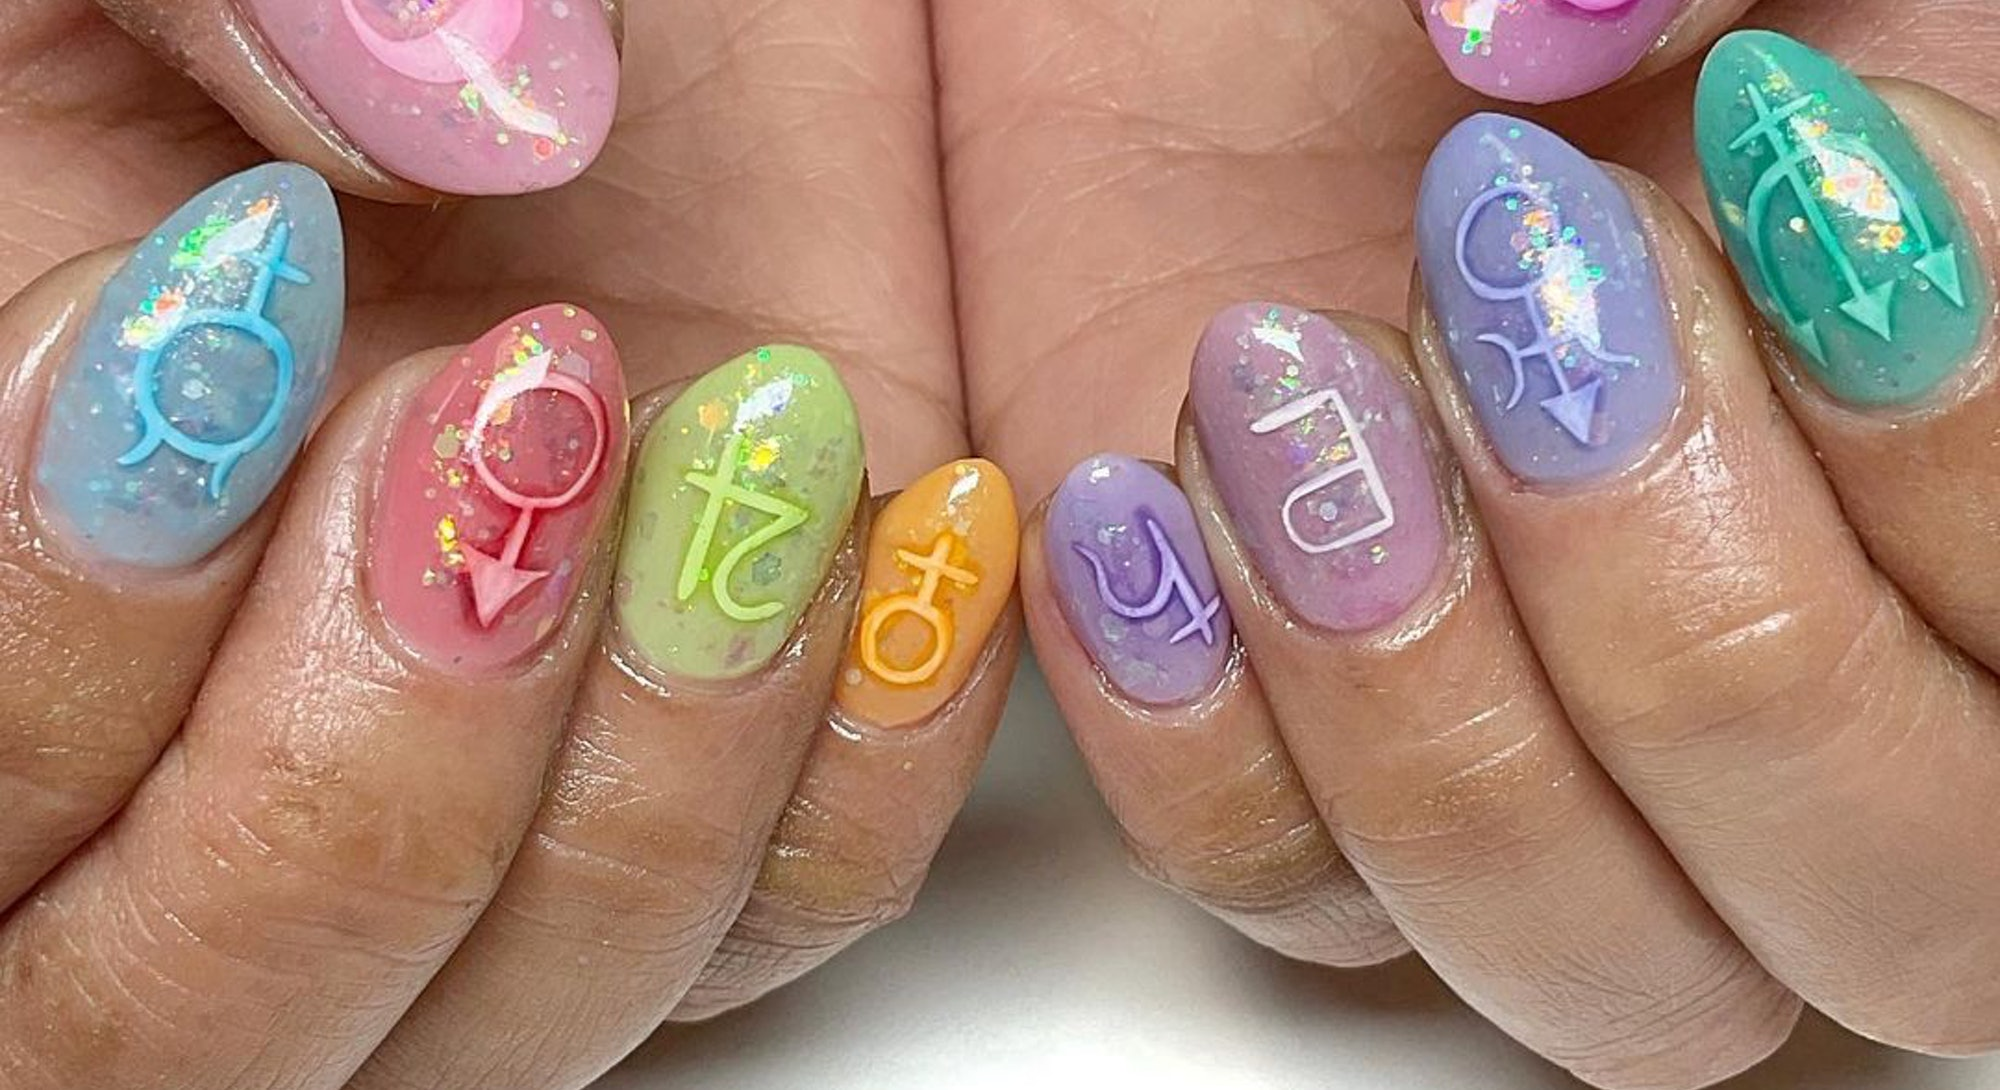 rainbow jelly nails with astrological signs